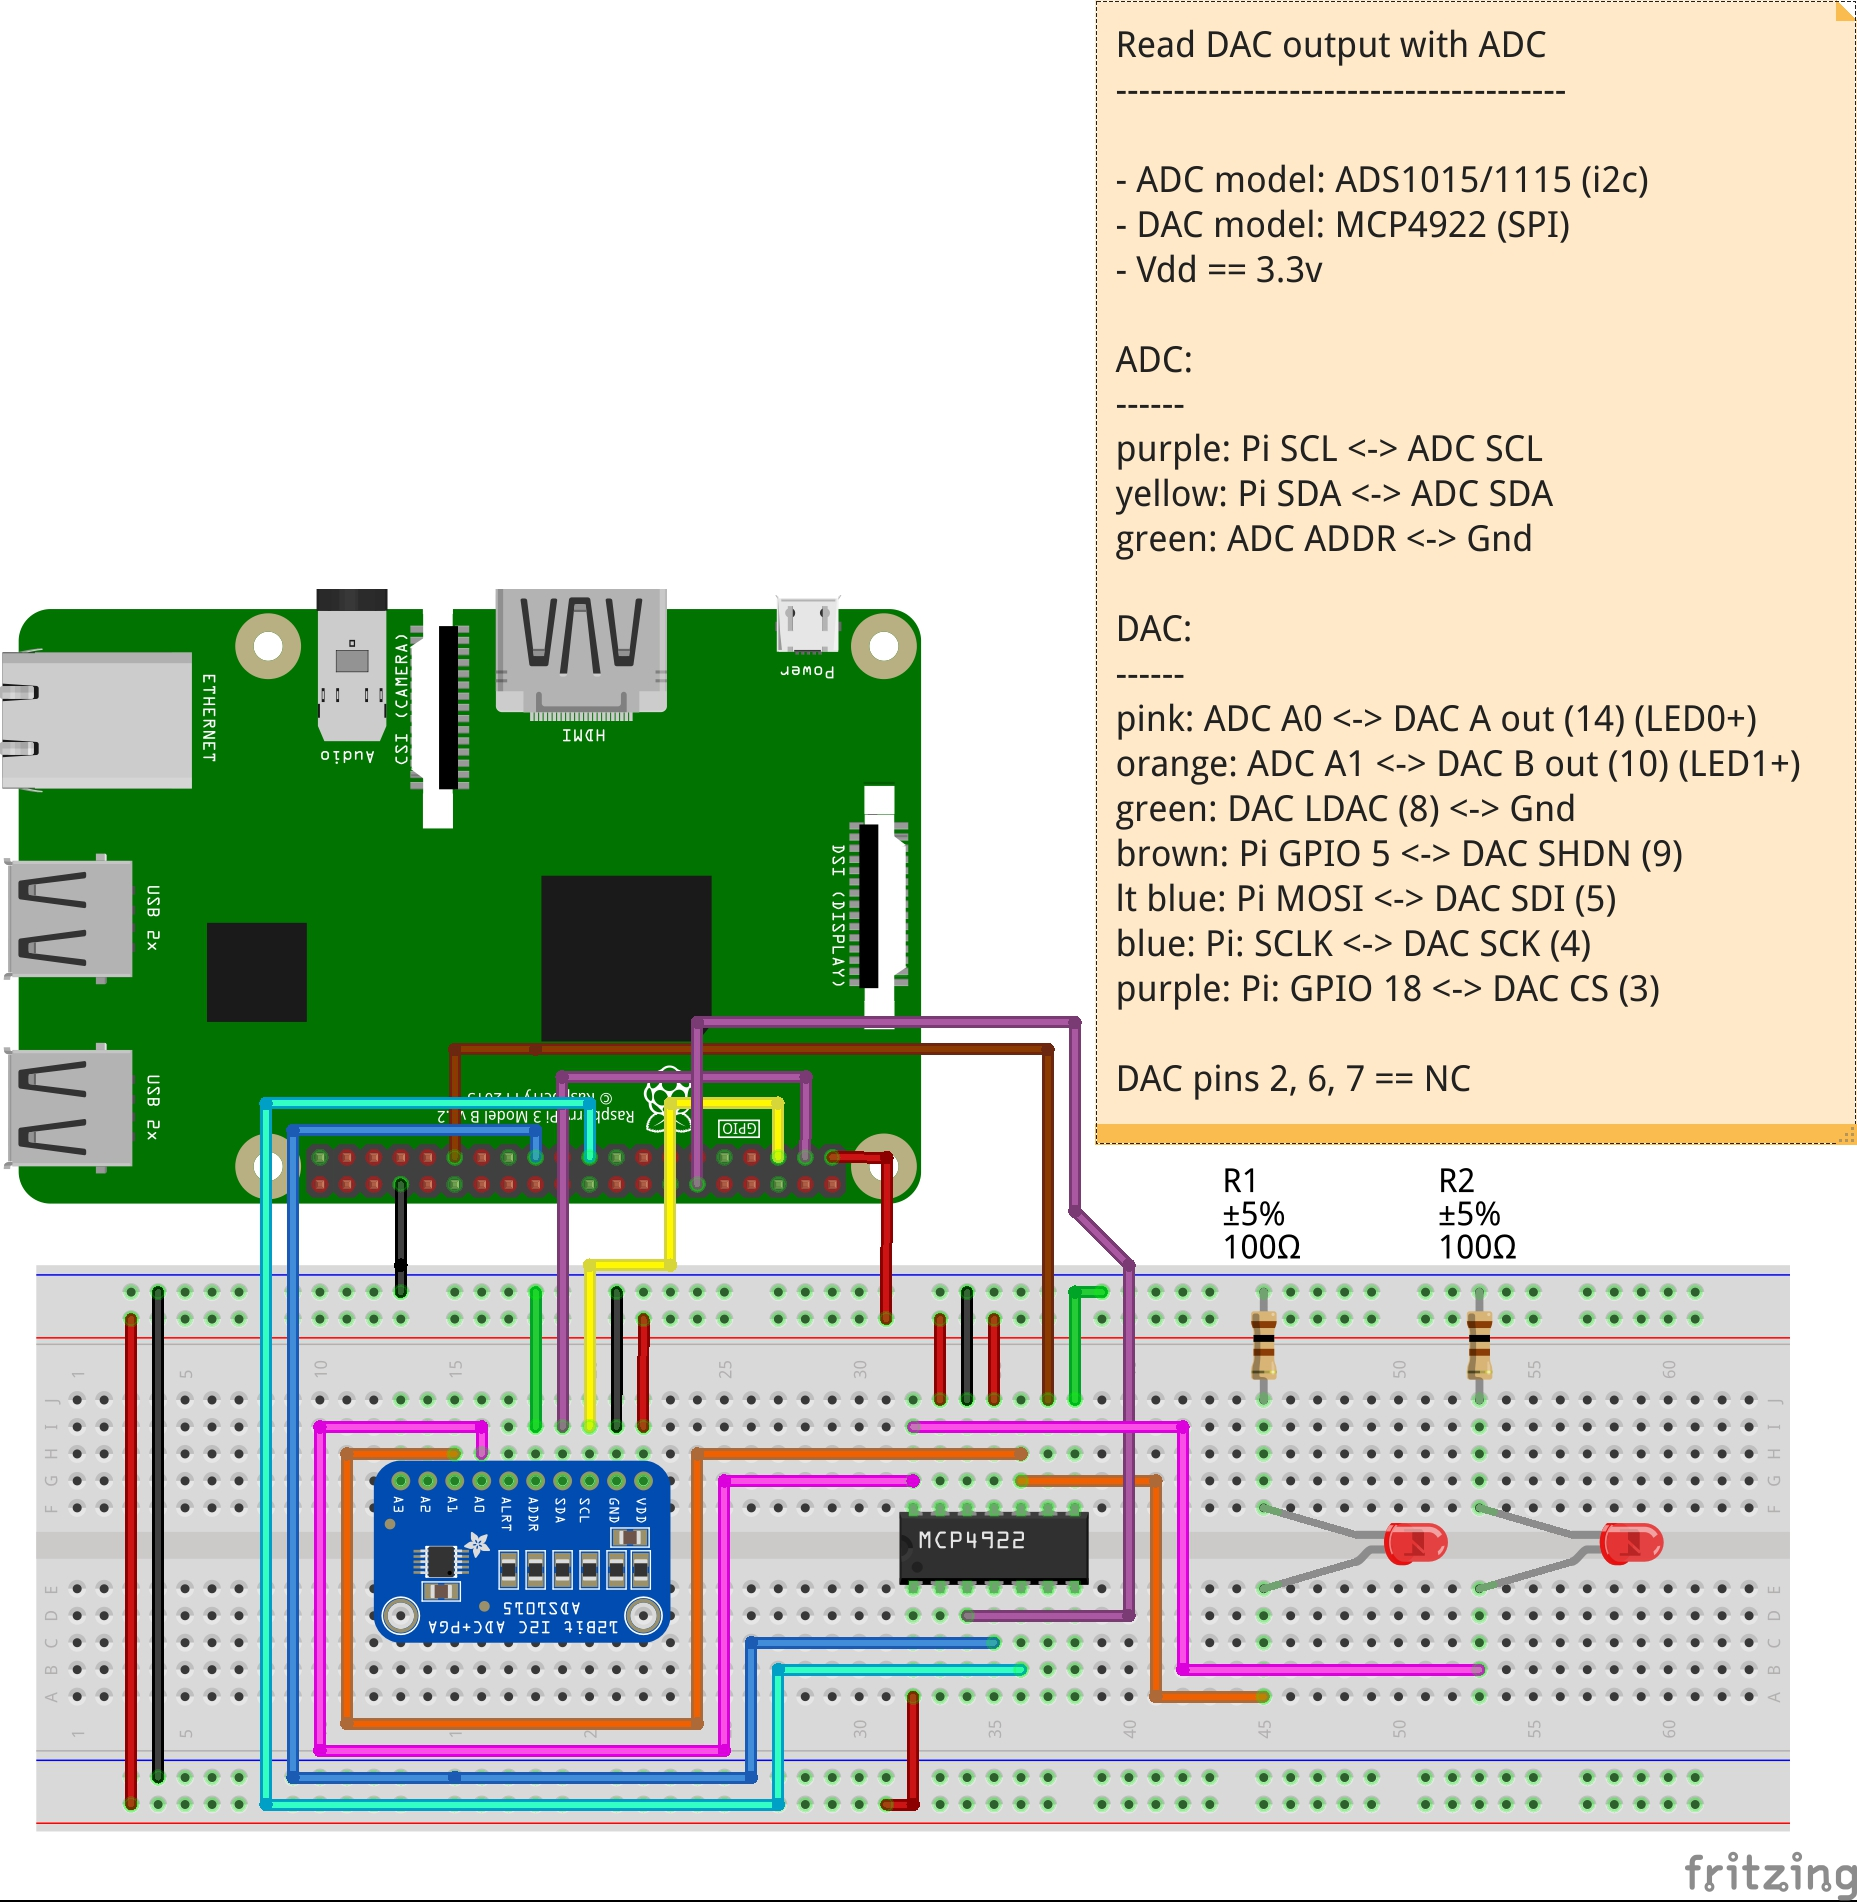 Bit String Manipulation Made Easy With Bitmanip Wiringpi Perl Example Update Breadboard Layout And Schematic Used For The Prototype Testing